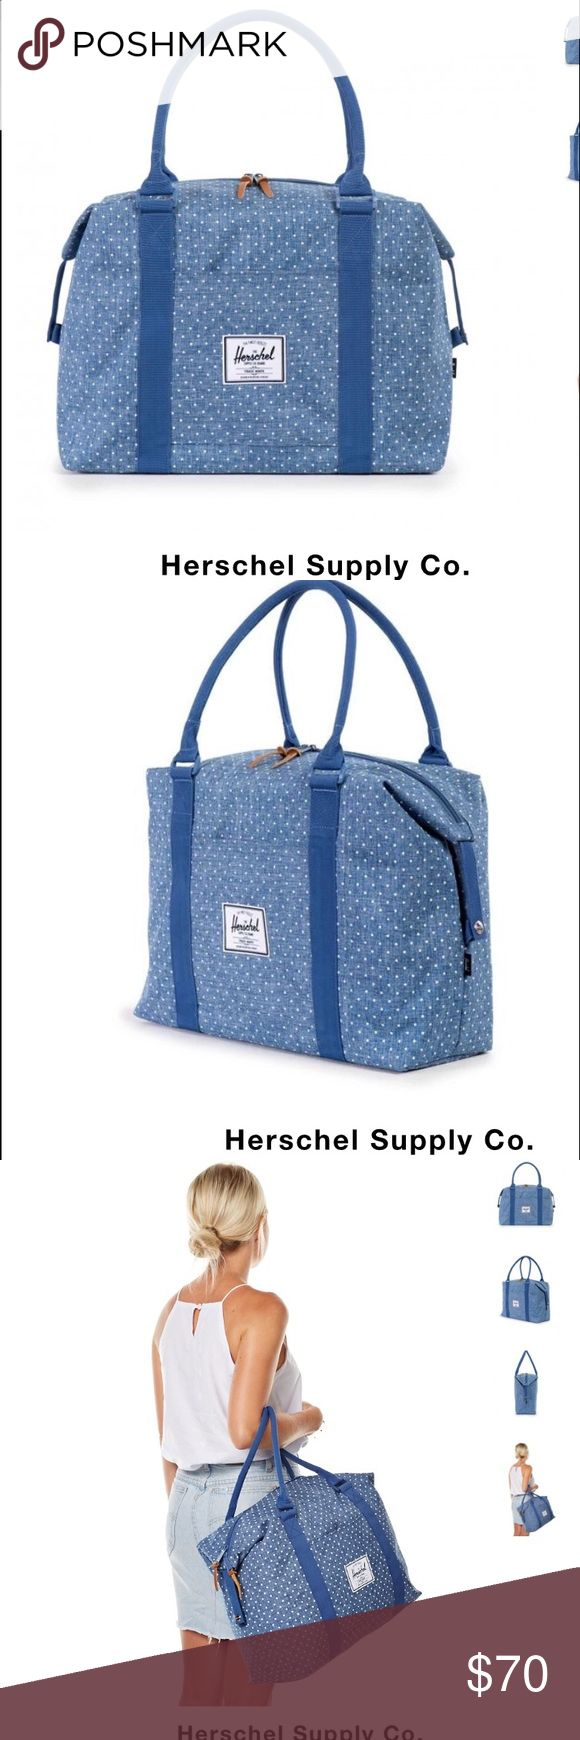 Herschel Limoges Strand Crosshatch Limoges crosshatch/polka dot duffle. Brand new with tags. Never used. Herschel Supply Company Bags Travel Bags